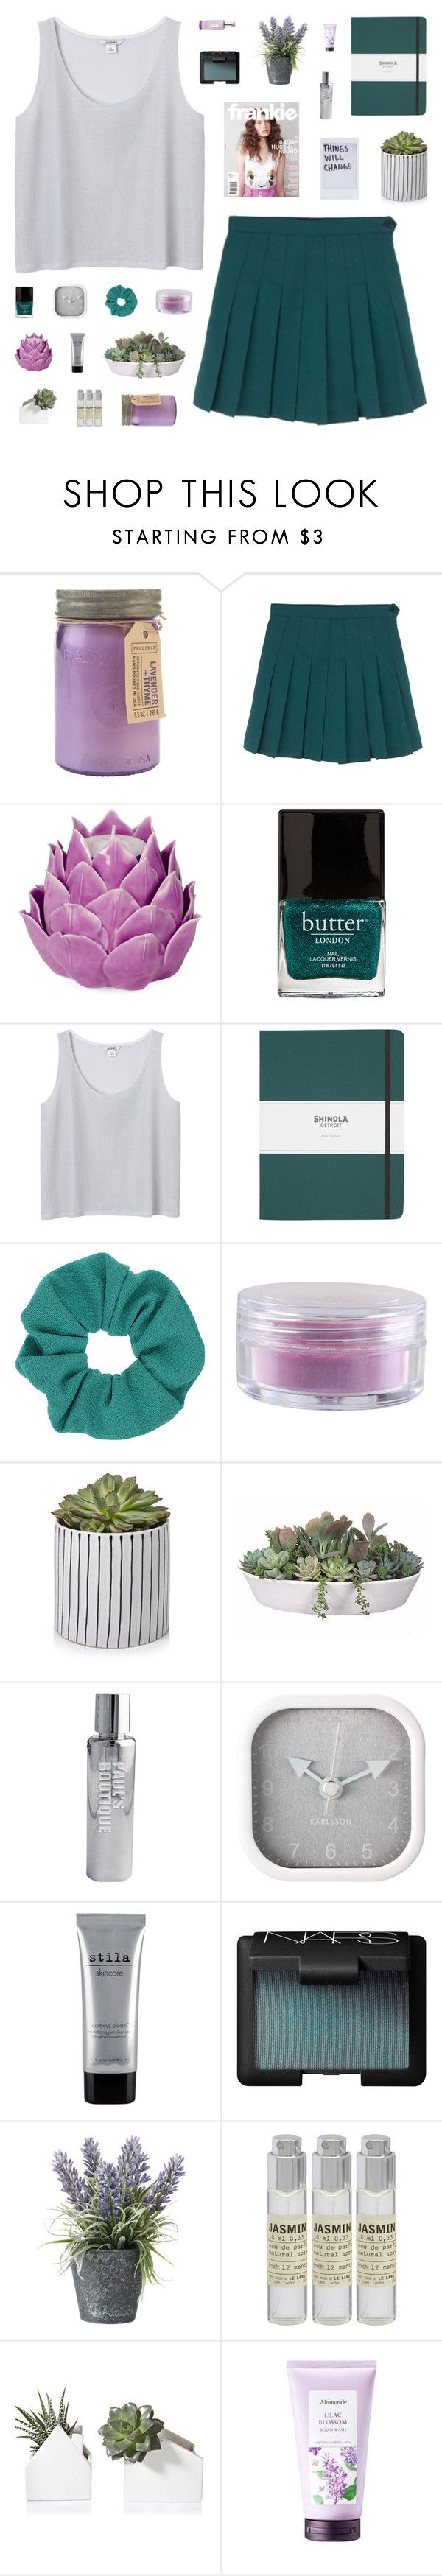 """""""~ O1O616"""" by khieug ❤ liked on Polyvore featuring Paddywax, Zara Home, Butter London, Monki, Shinola, Topshop, Forever 21, VesseL, Paul's Boutique and Karlsson"""